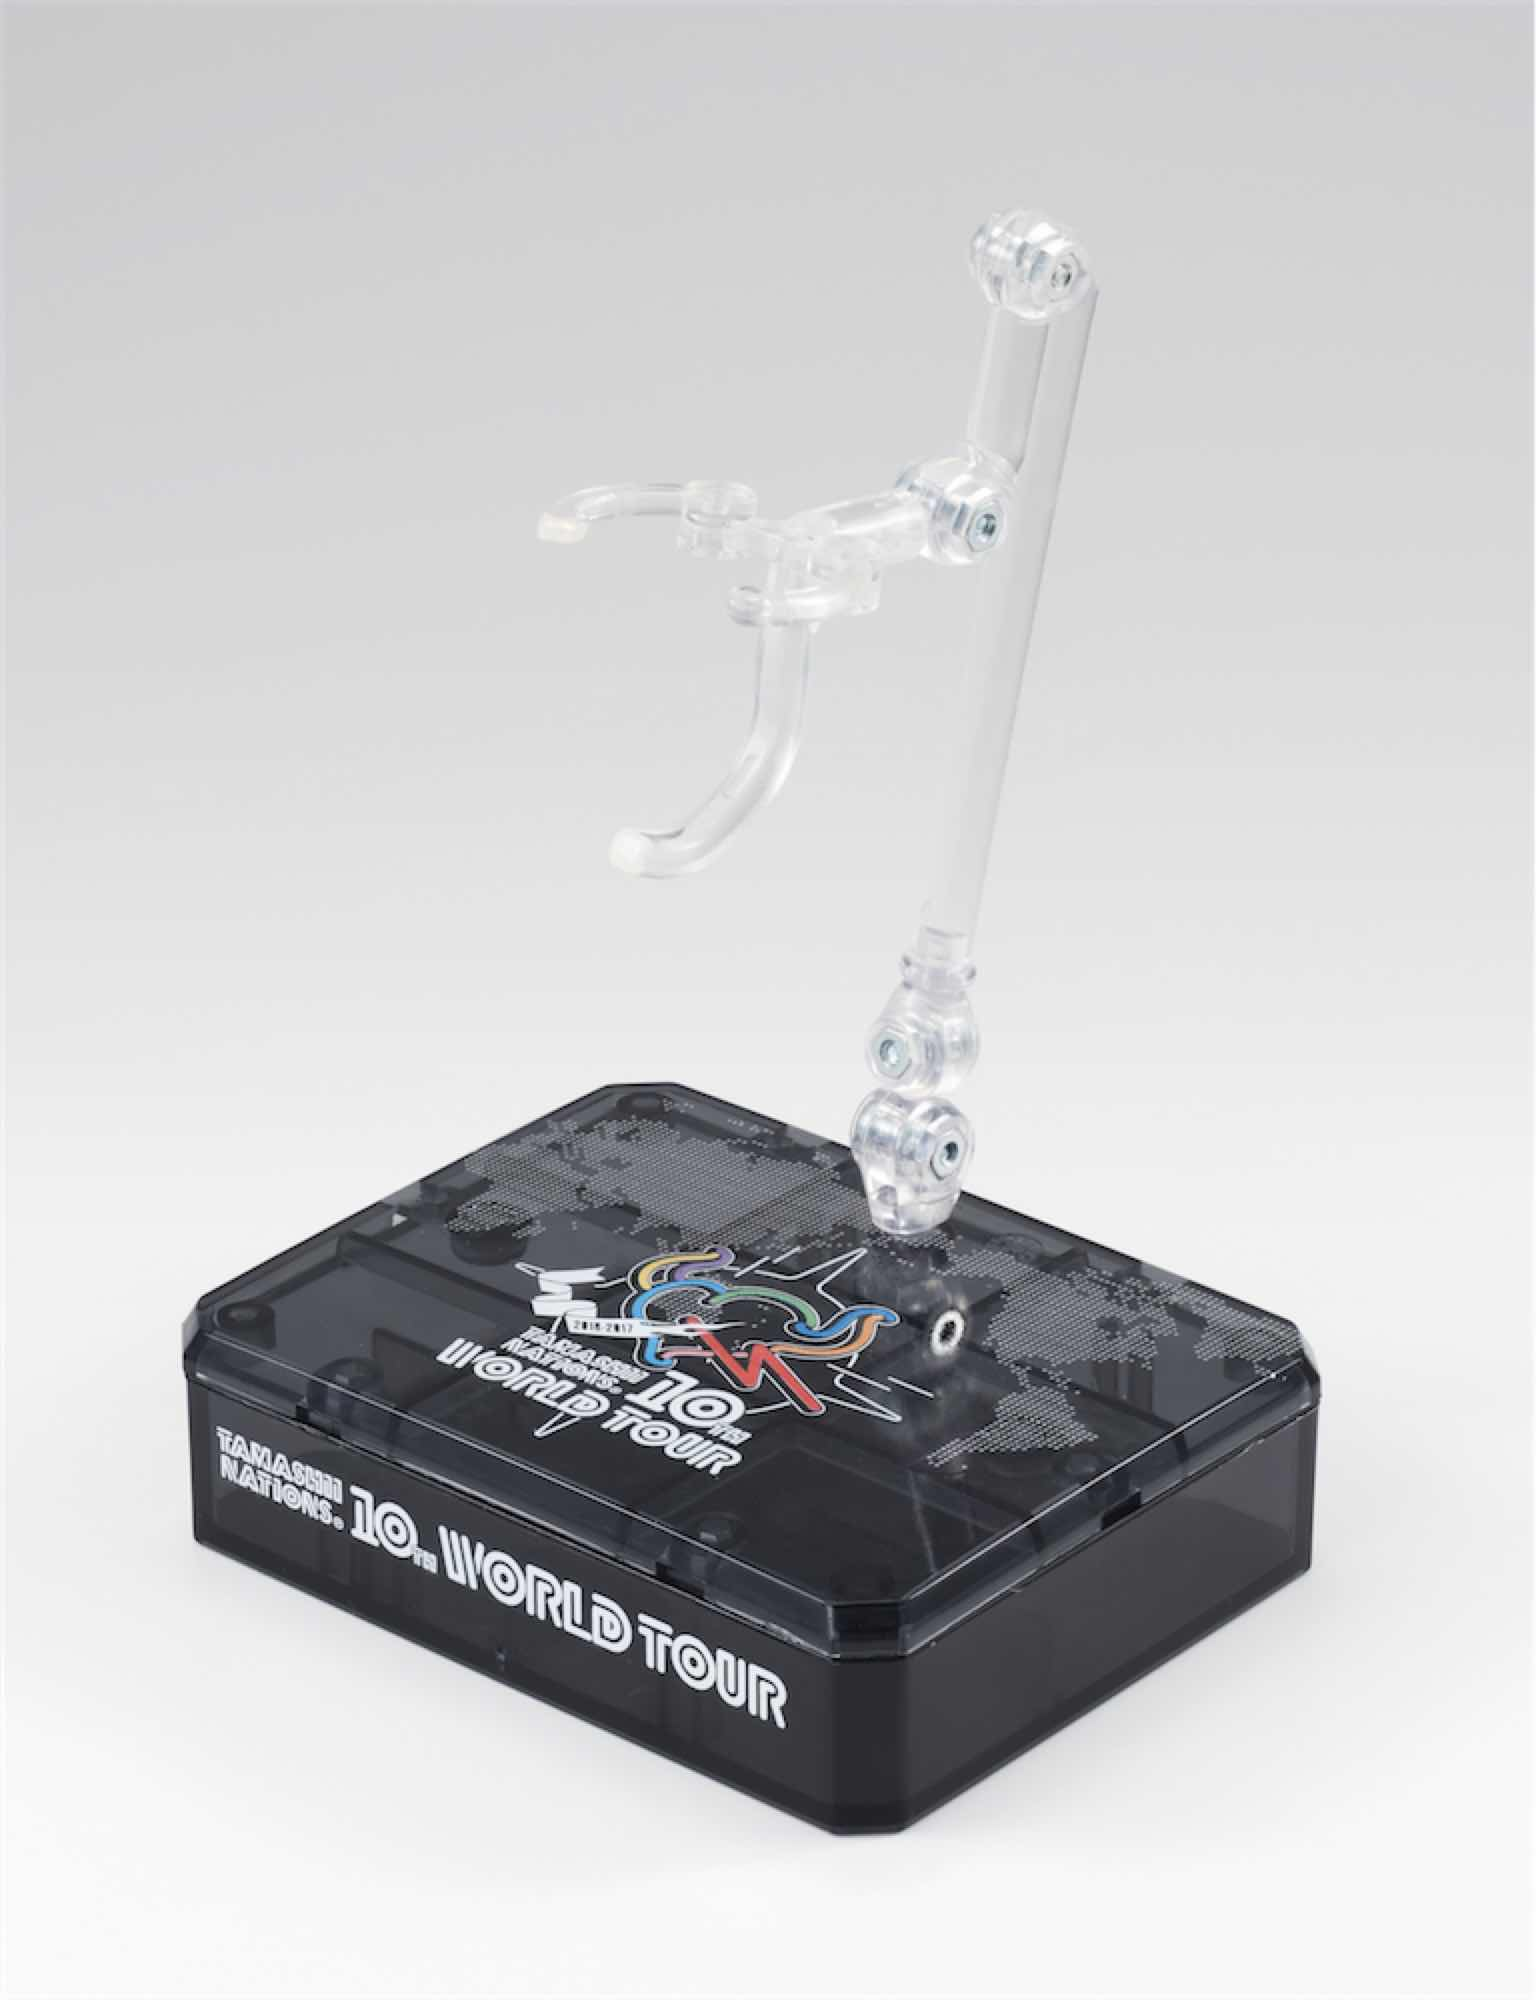 Bandai Base Stand Figure 15cm Tamashii World Tour 10th Exclu